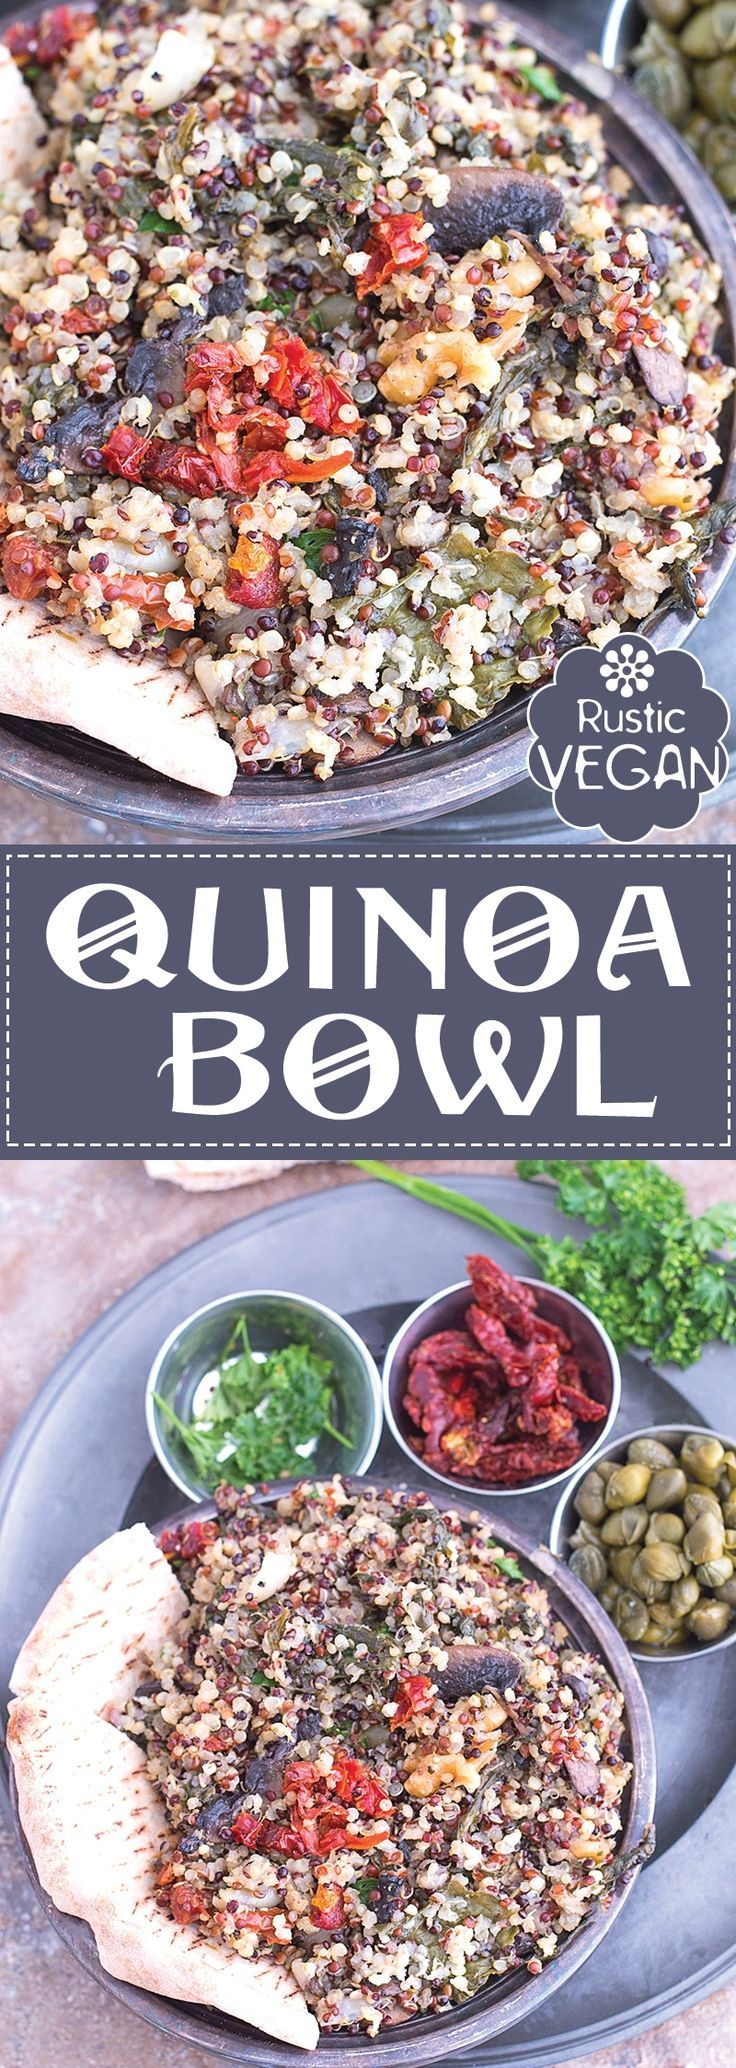 Quick and easy Rustic Quinoa Bowl made with TruColor's Tricolor Sprouted Quinoa. I made it for lunch and put it into a pita bread. It was unbelievably delicious!! | vegan recipes, vegan lunch, comfort food, meal prep, make ahead recipes